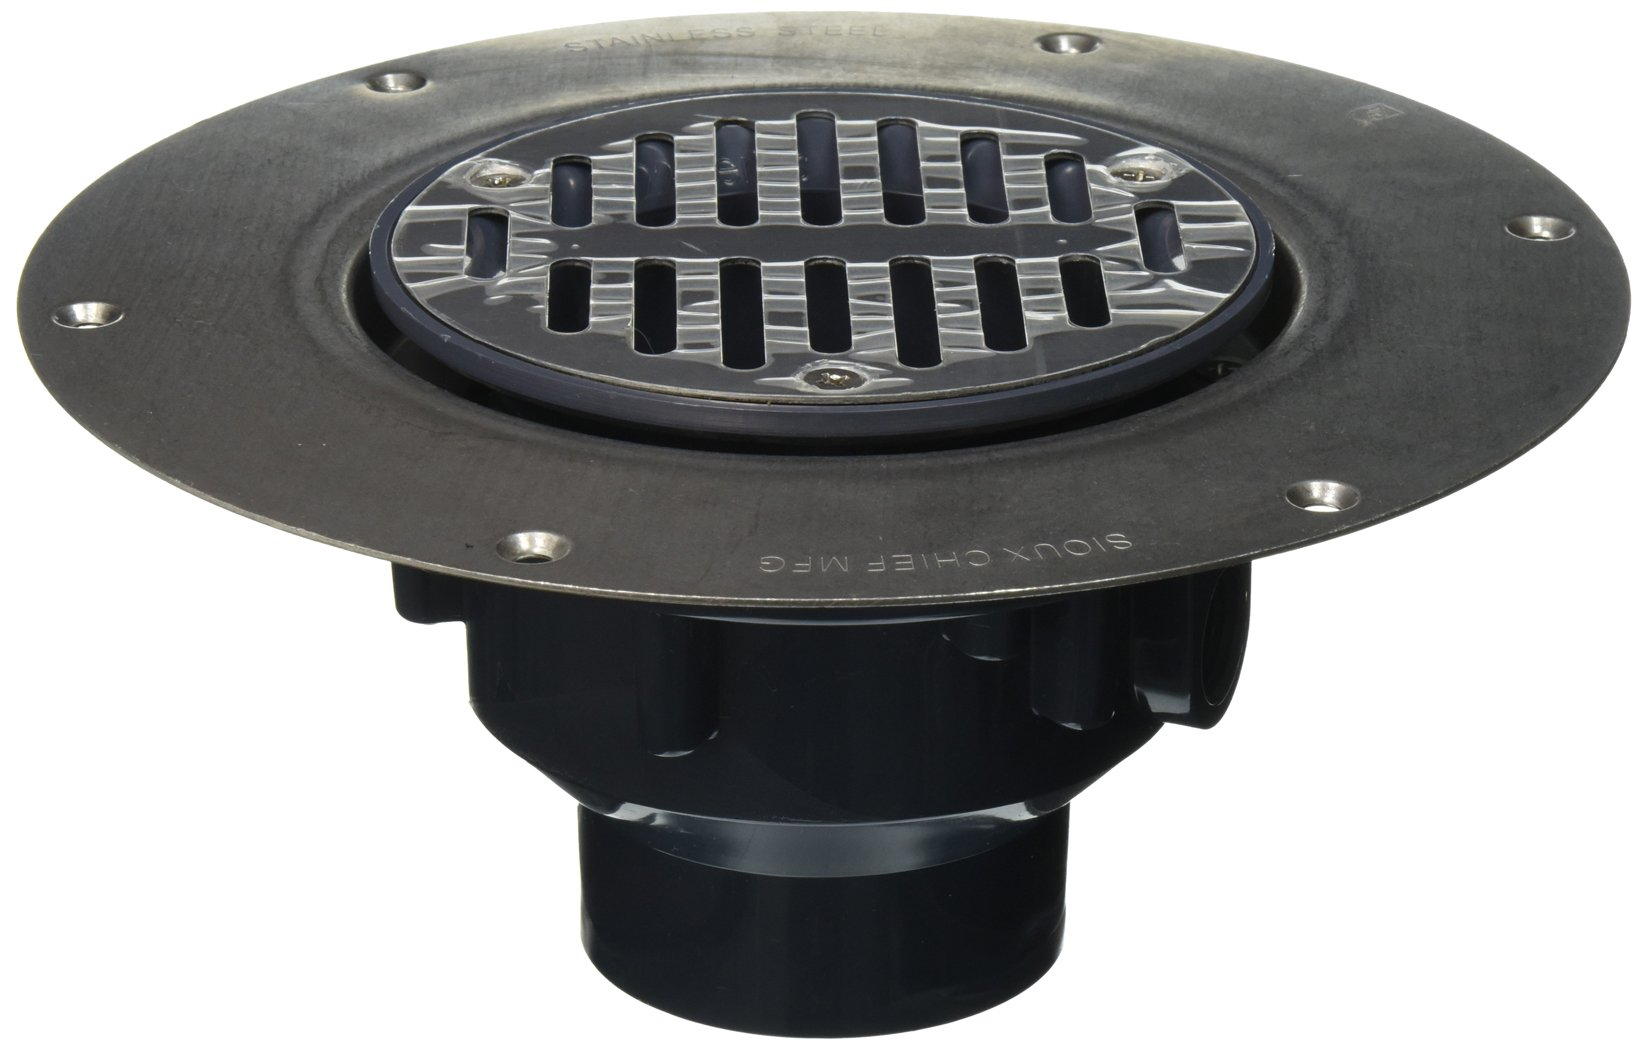 Soux Chief 822-2PS Halo Drain Adjustable Floor Drain Schlage 40 Hub Connection with Deck Flange by Soux Chief